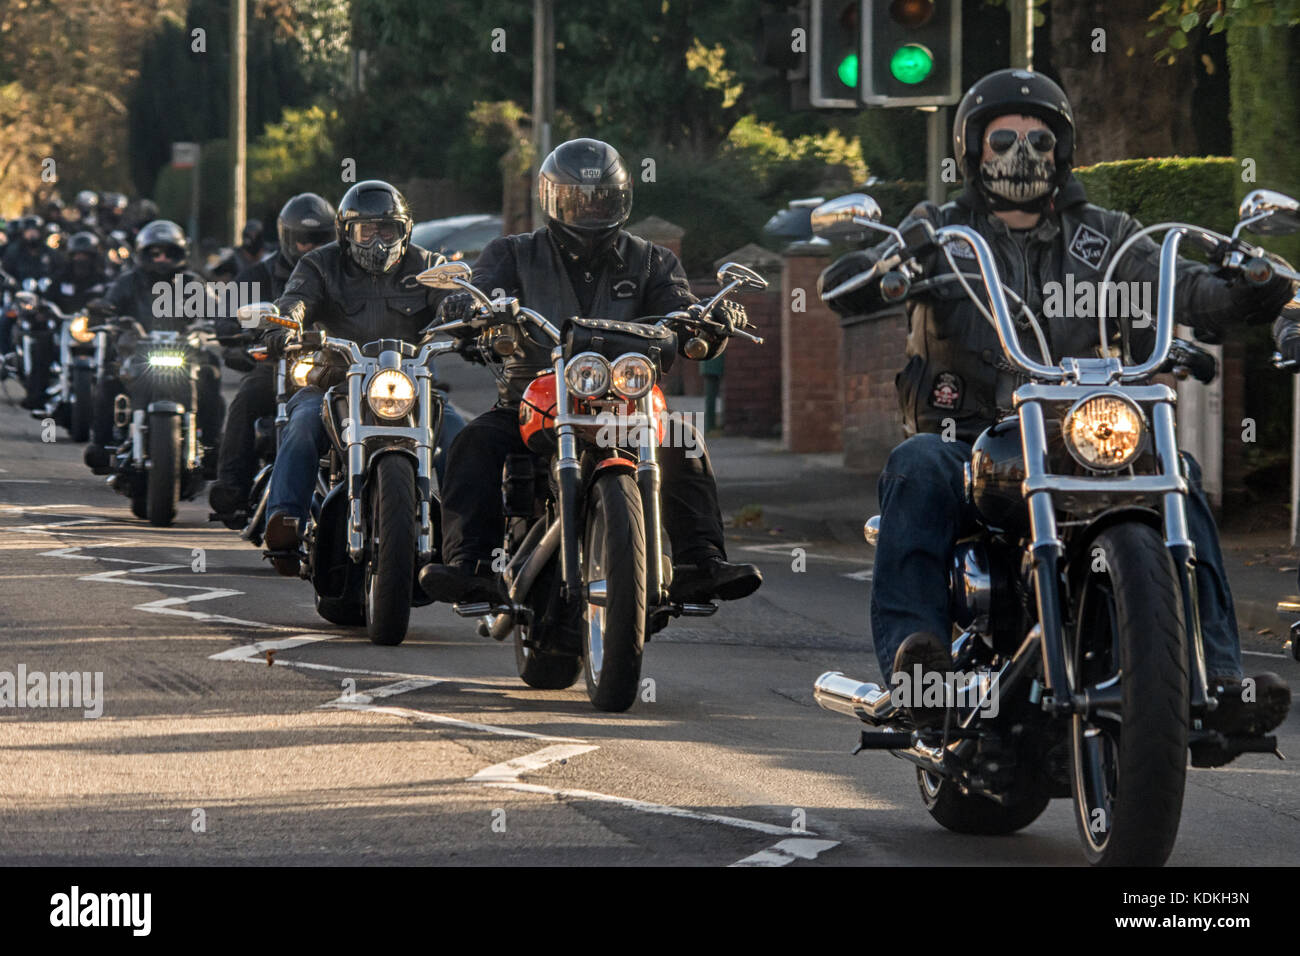 Melton Mowbray, UK. 14 October 2017. Around 100 Motorcycle bikers ride along the A606 into Melton Mowbrey. Credit: - Stock Image